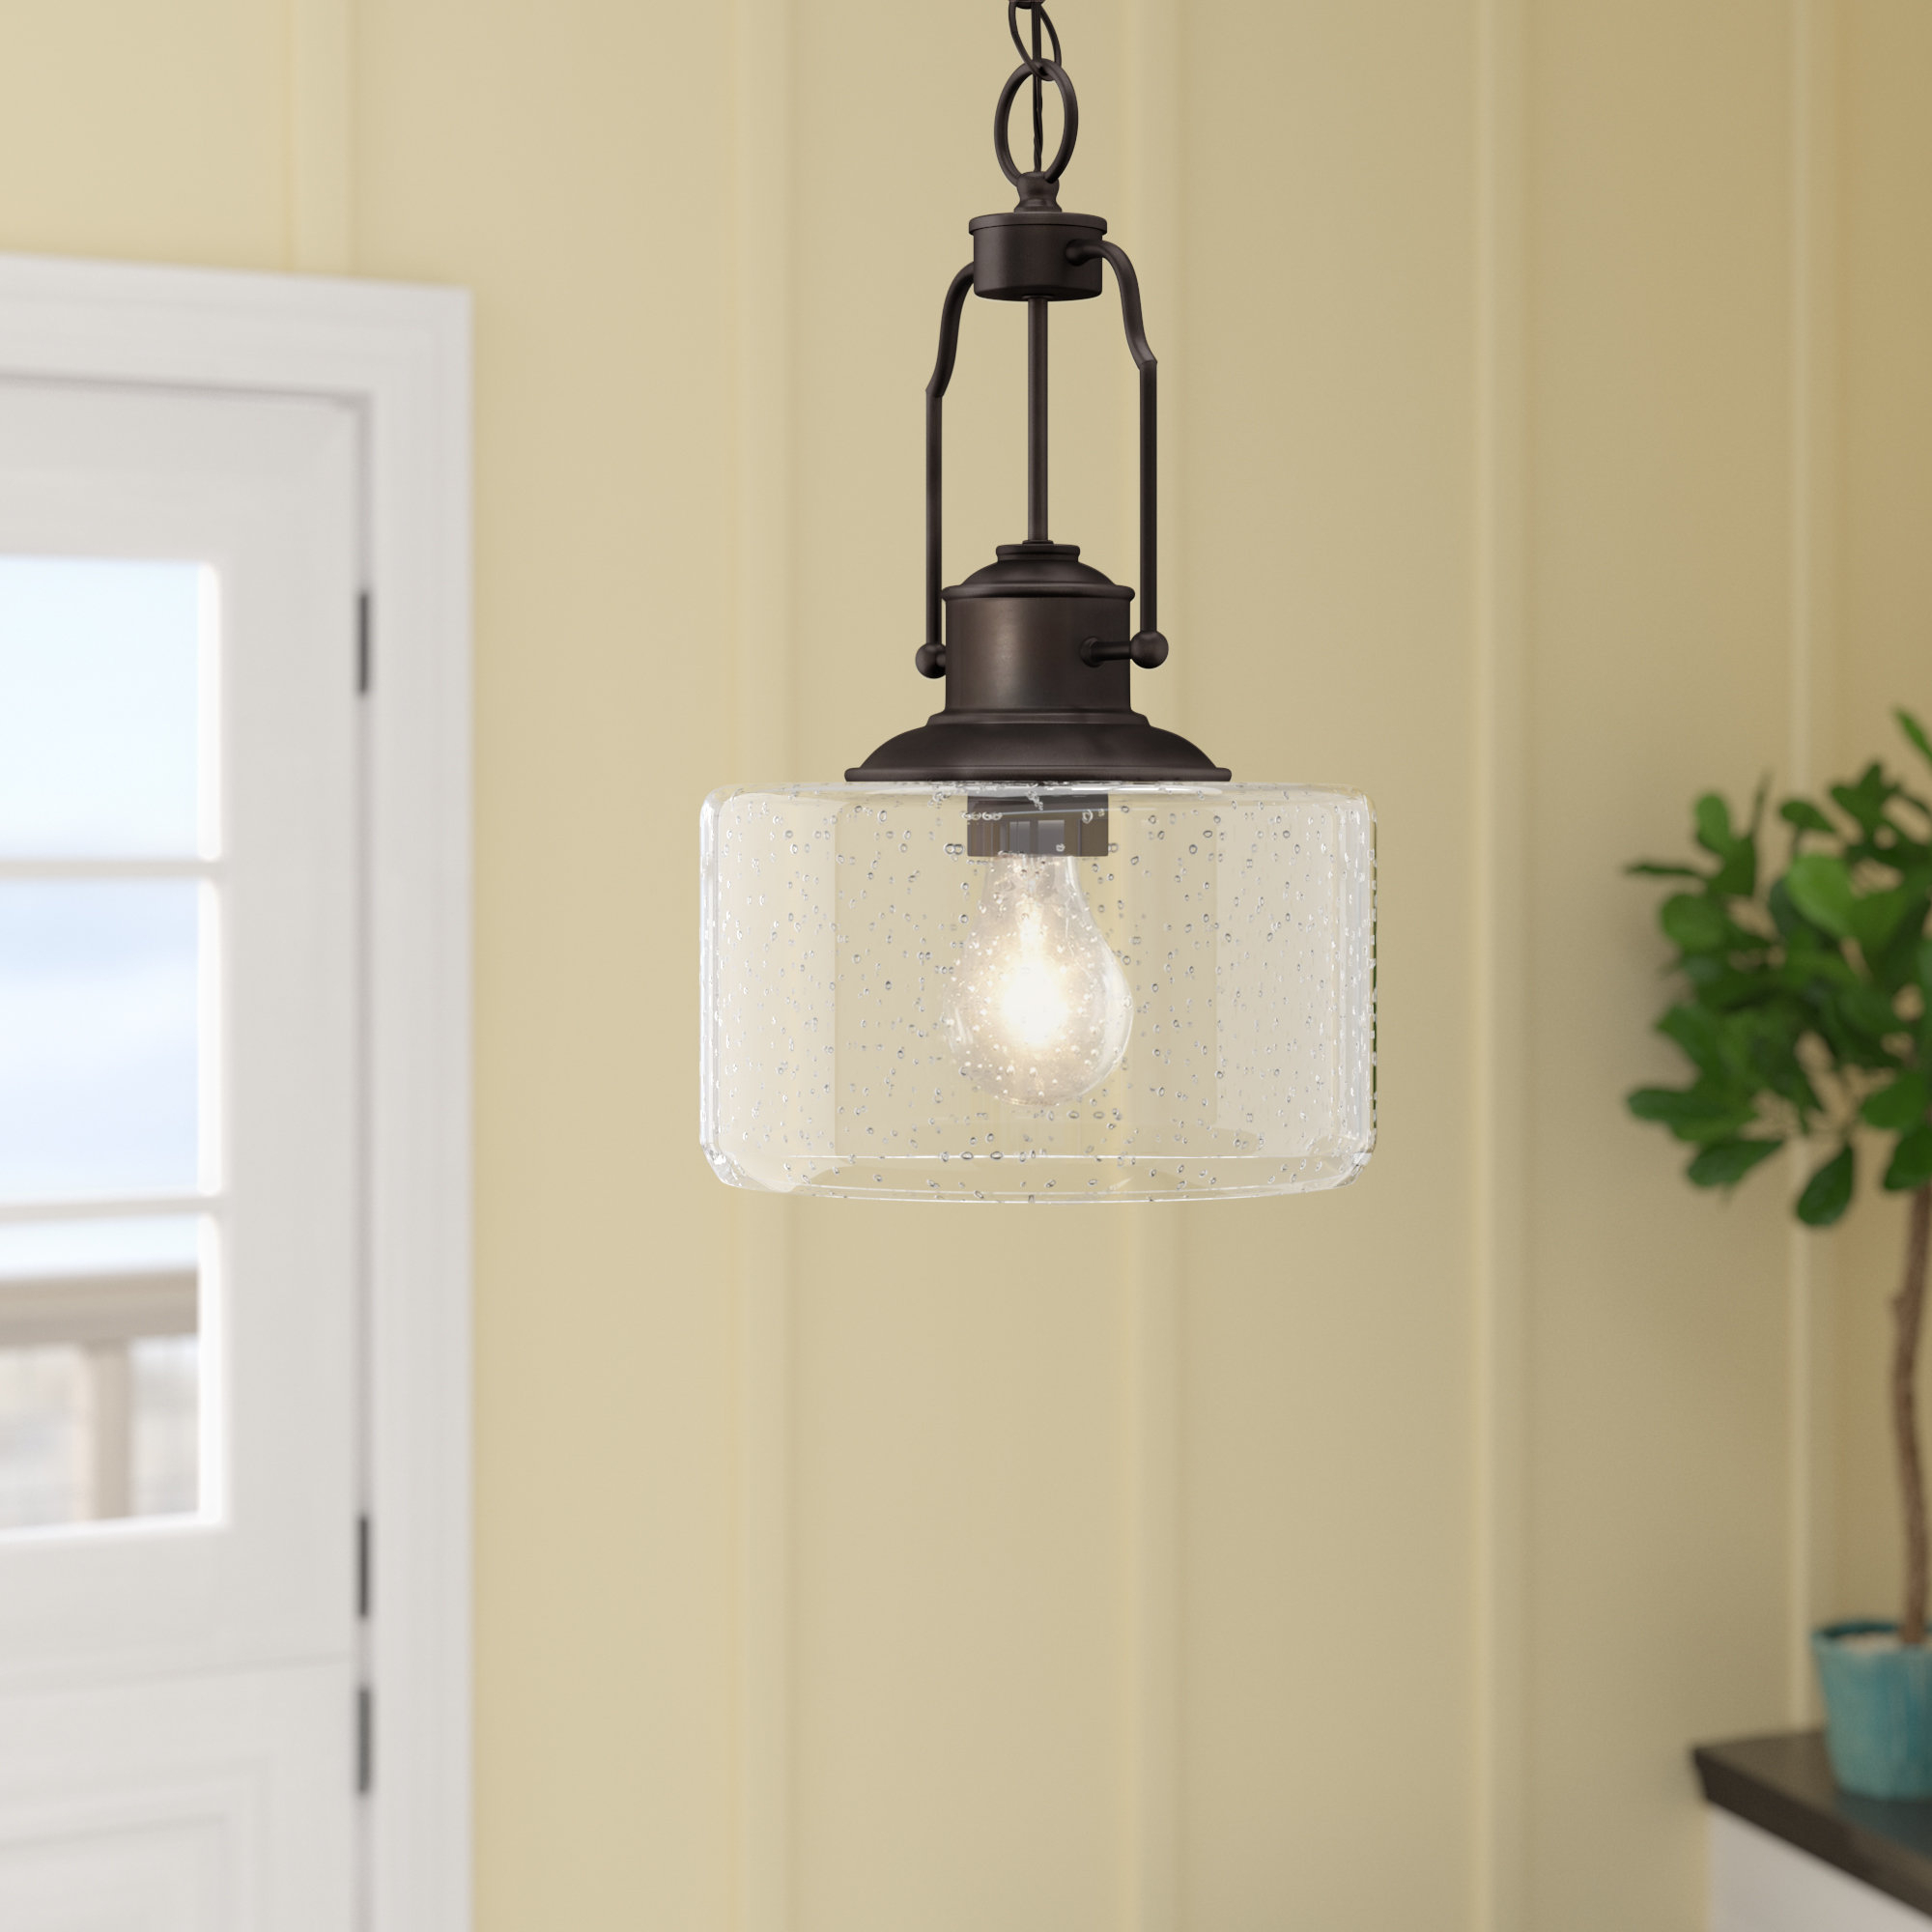 1 Light Drum Pendant With Regard To Moyer 1 Light Single Cylinder Pendants (View 24 of 30)